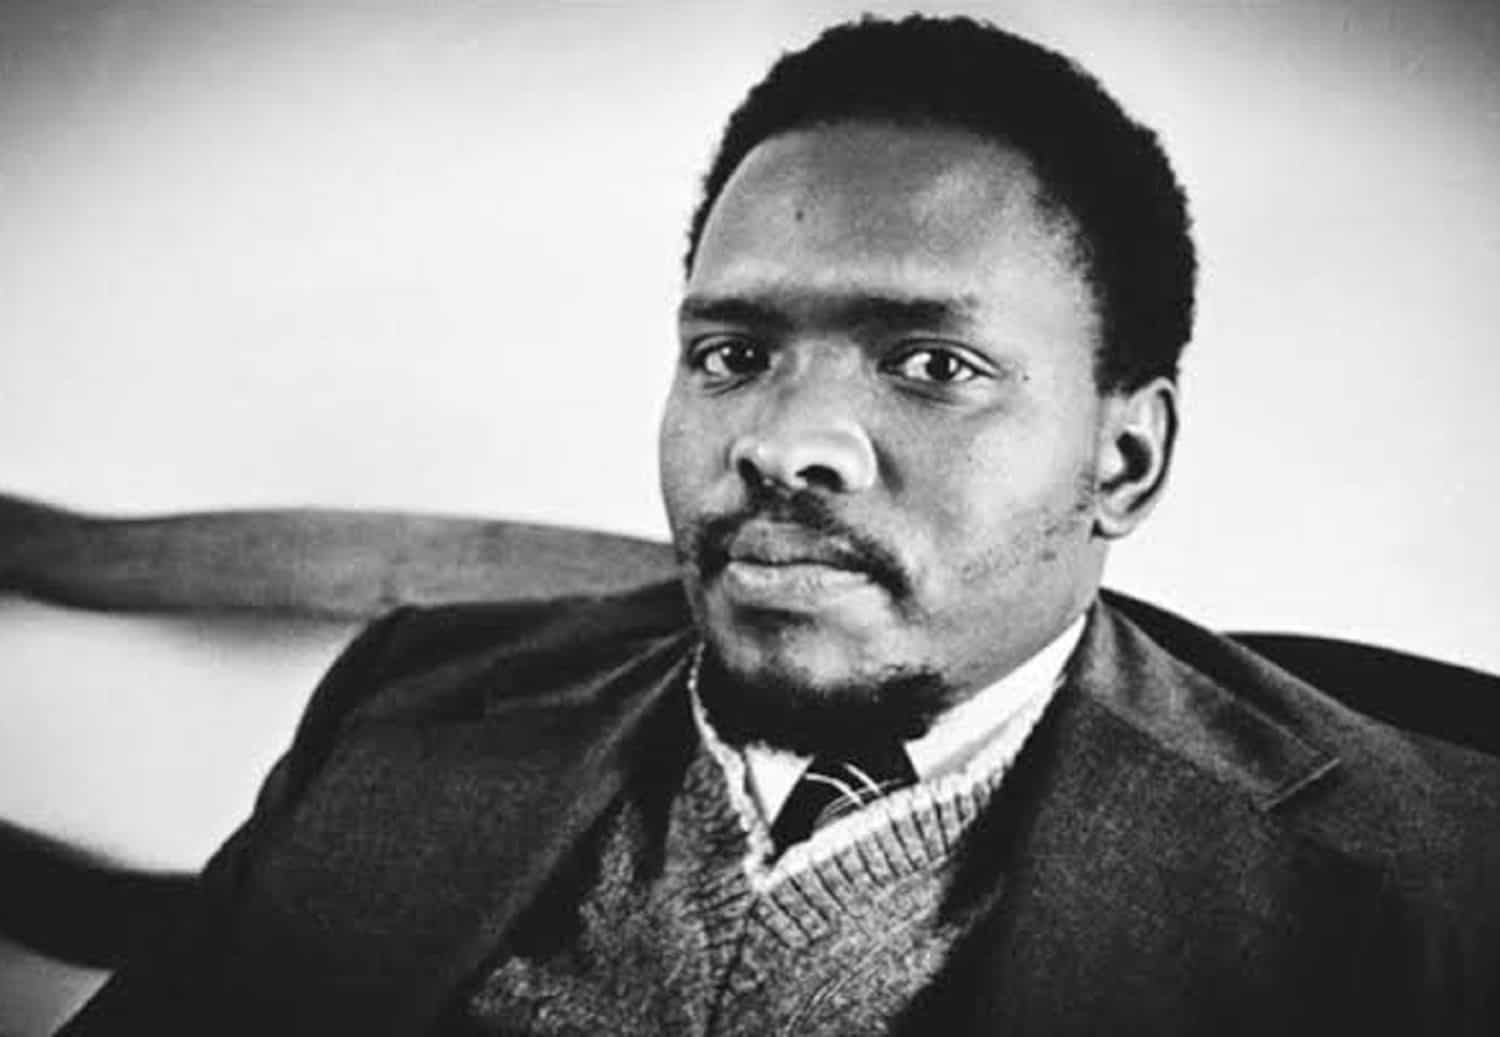 'Steve Biko is an exemplary leader for SA' 44 years after his brutal death, says Dr Fumene